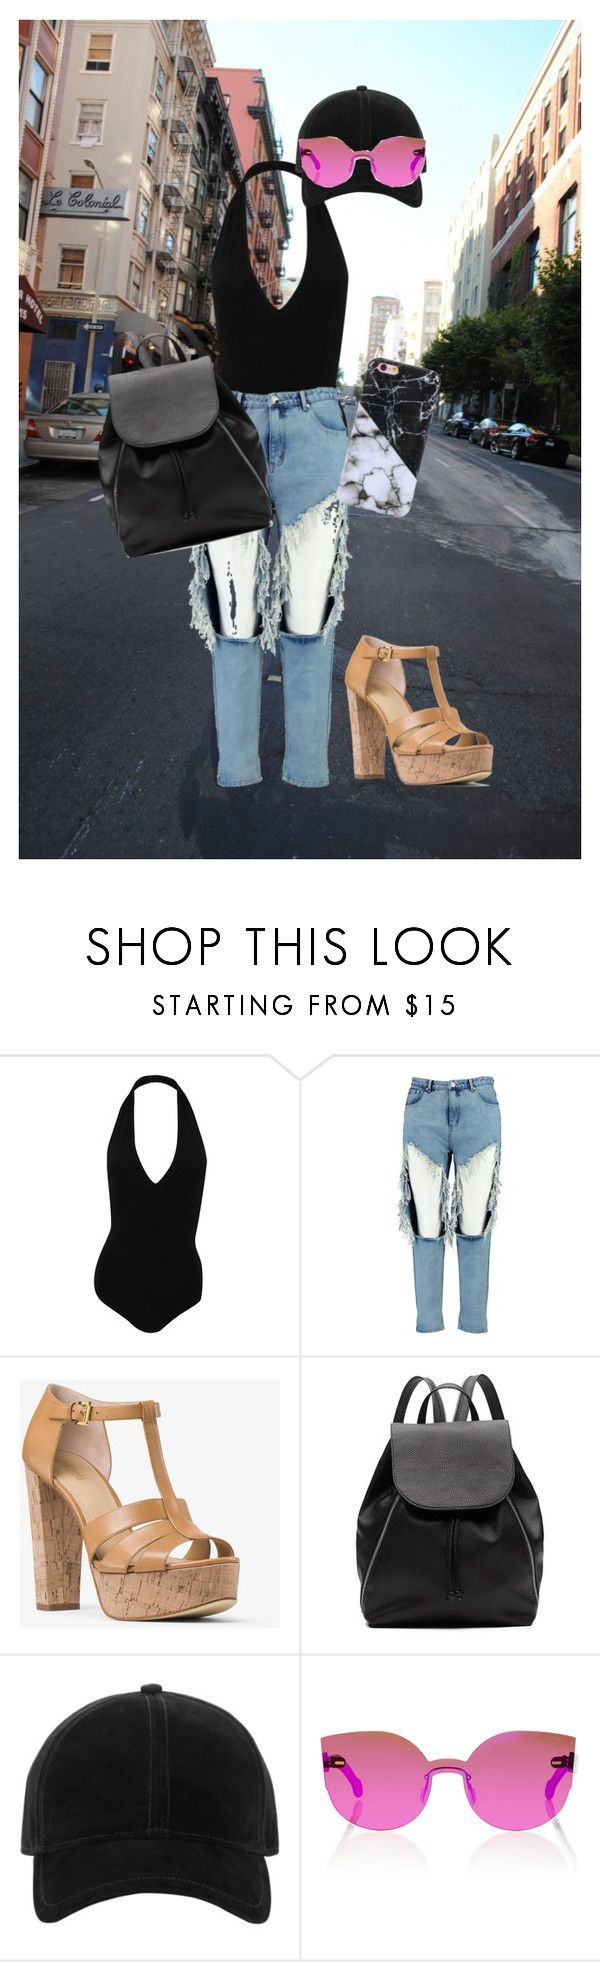 """""""Spandex Bodysuit"""" by pandalover435 ❤ liked on Polyvore featuring American Apparel, Boohoo, MICHAEL Michael Kors, Witchery, rag & bone and RetroSuperFuture"""